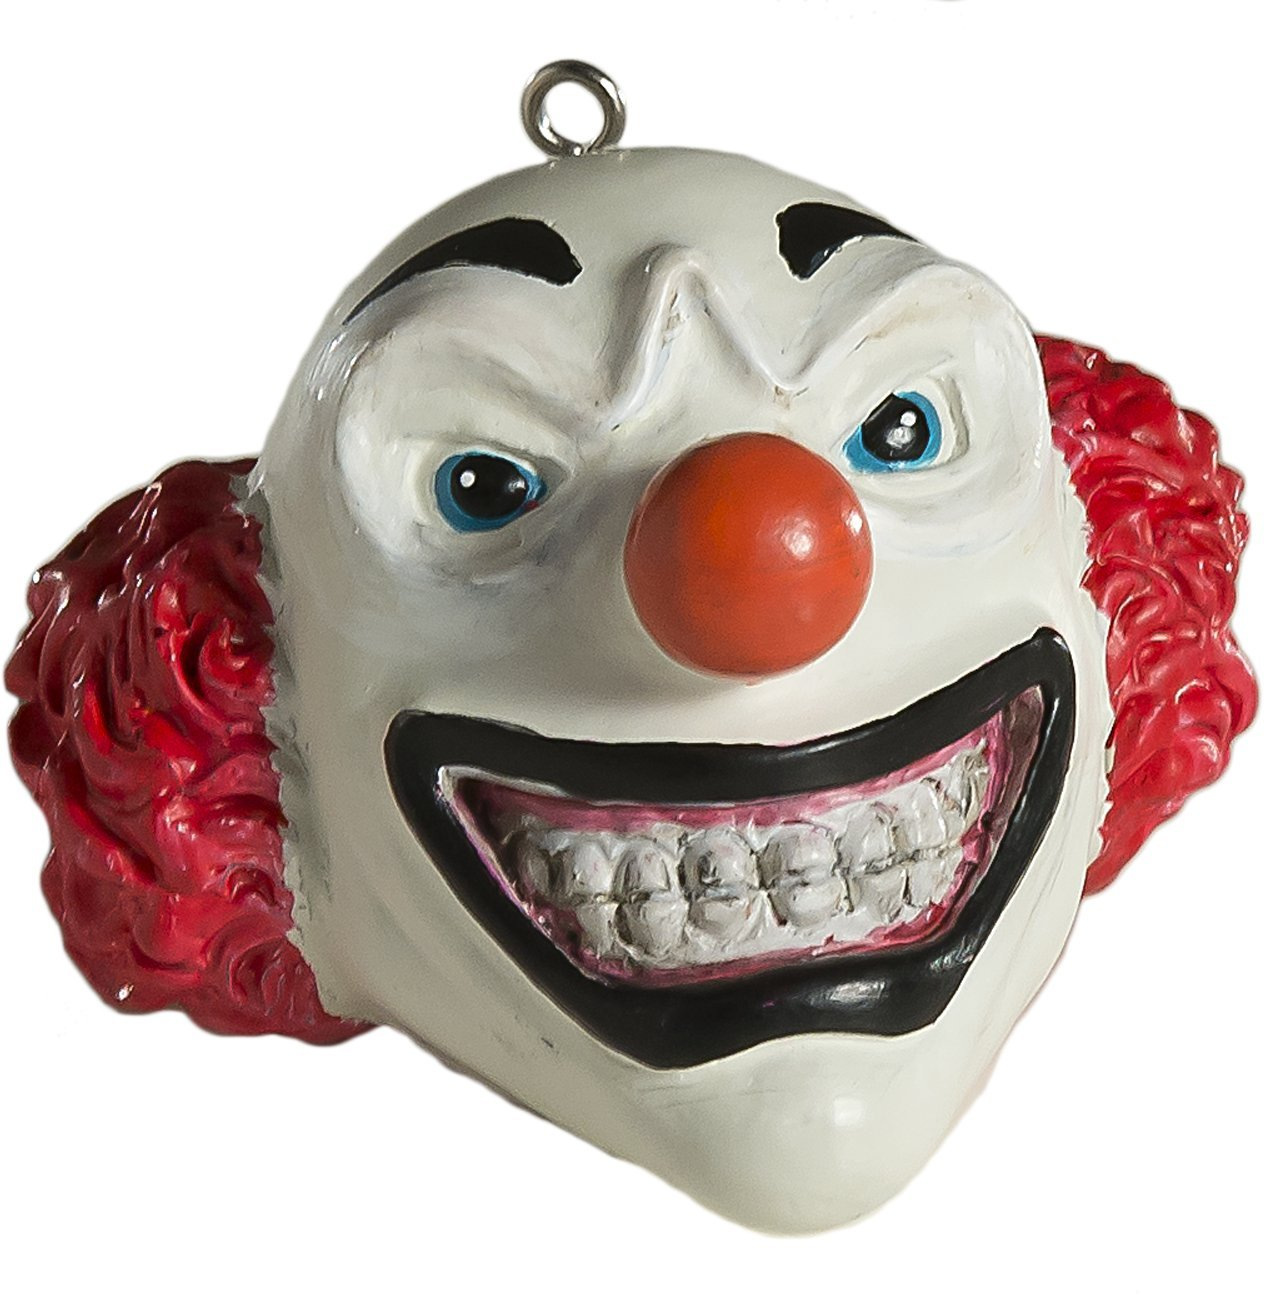 HorrorNaments Evil Grinning Clown Head Horror Ornament - Scary Prop and Decoration for Halloween, Christmas, Parties and Events - Series 1